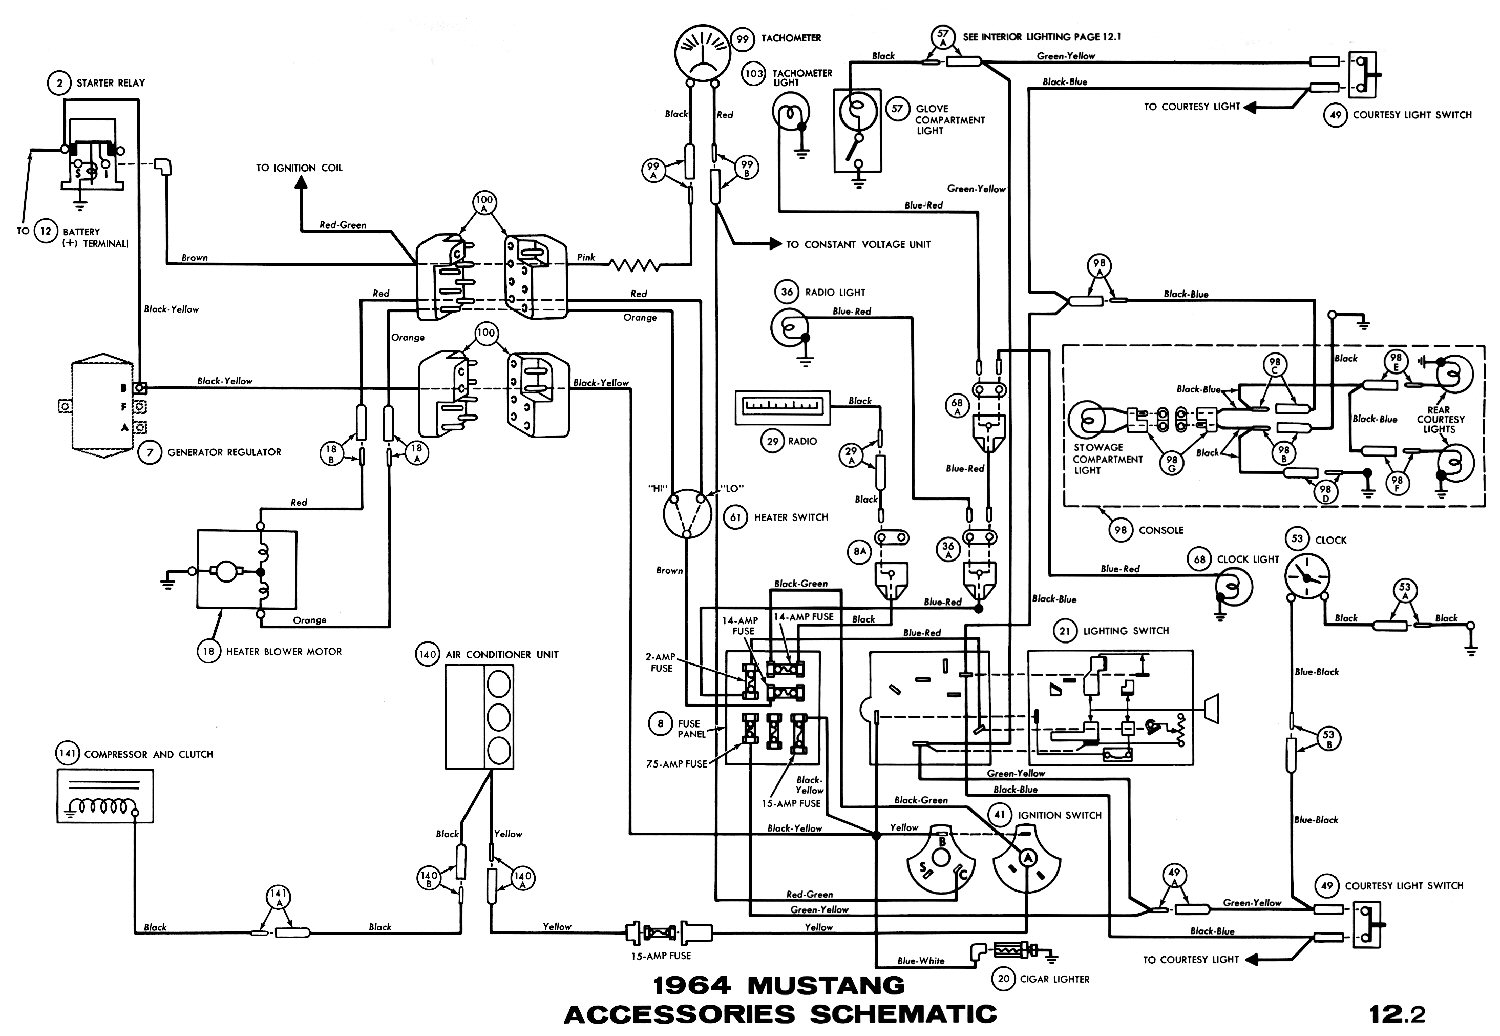 small resolution of 1964 mustang accessories pictorial or schematic basic electronics 1964 1 2 mustang fuse box diagram